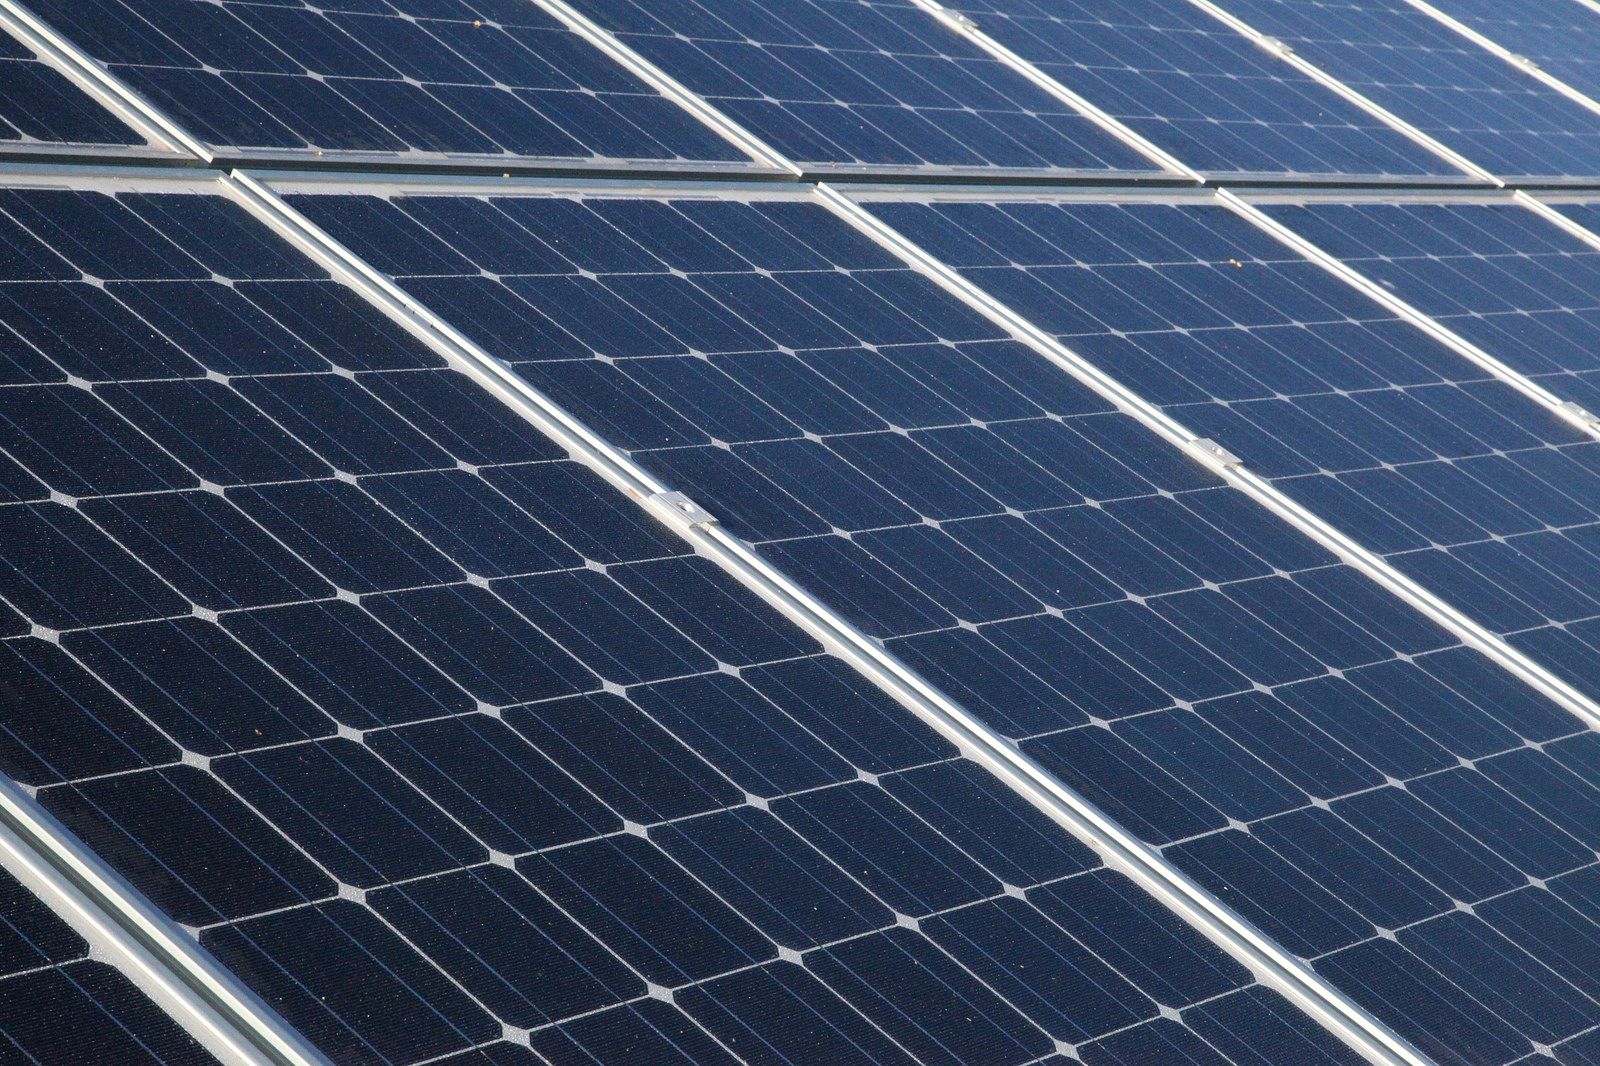 The 28MW project stands as the first utility-scale solar project in Jamaica. Image: Kate Ausburn / Flickr